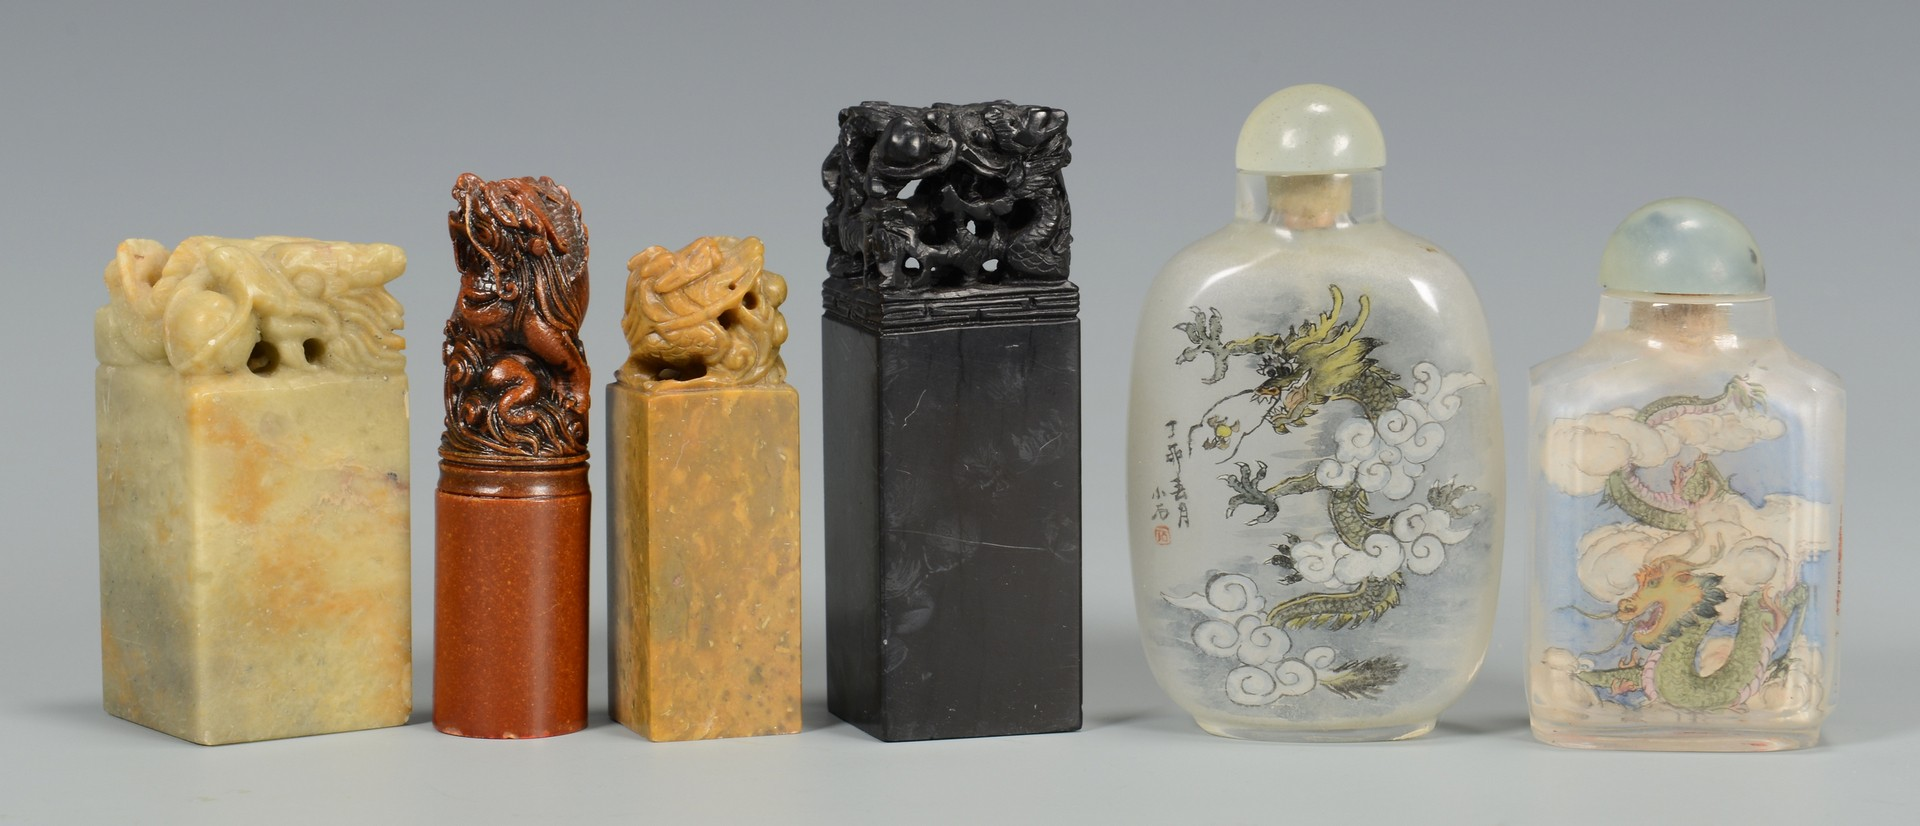 Lot 3594184: 12 Snuff Bottles, some signed, plus seals